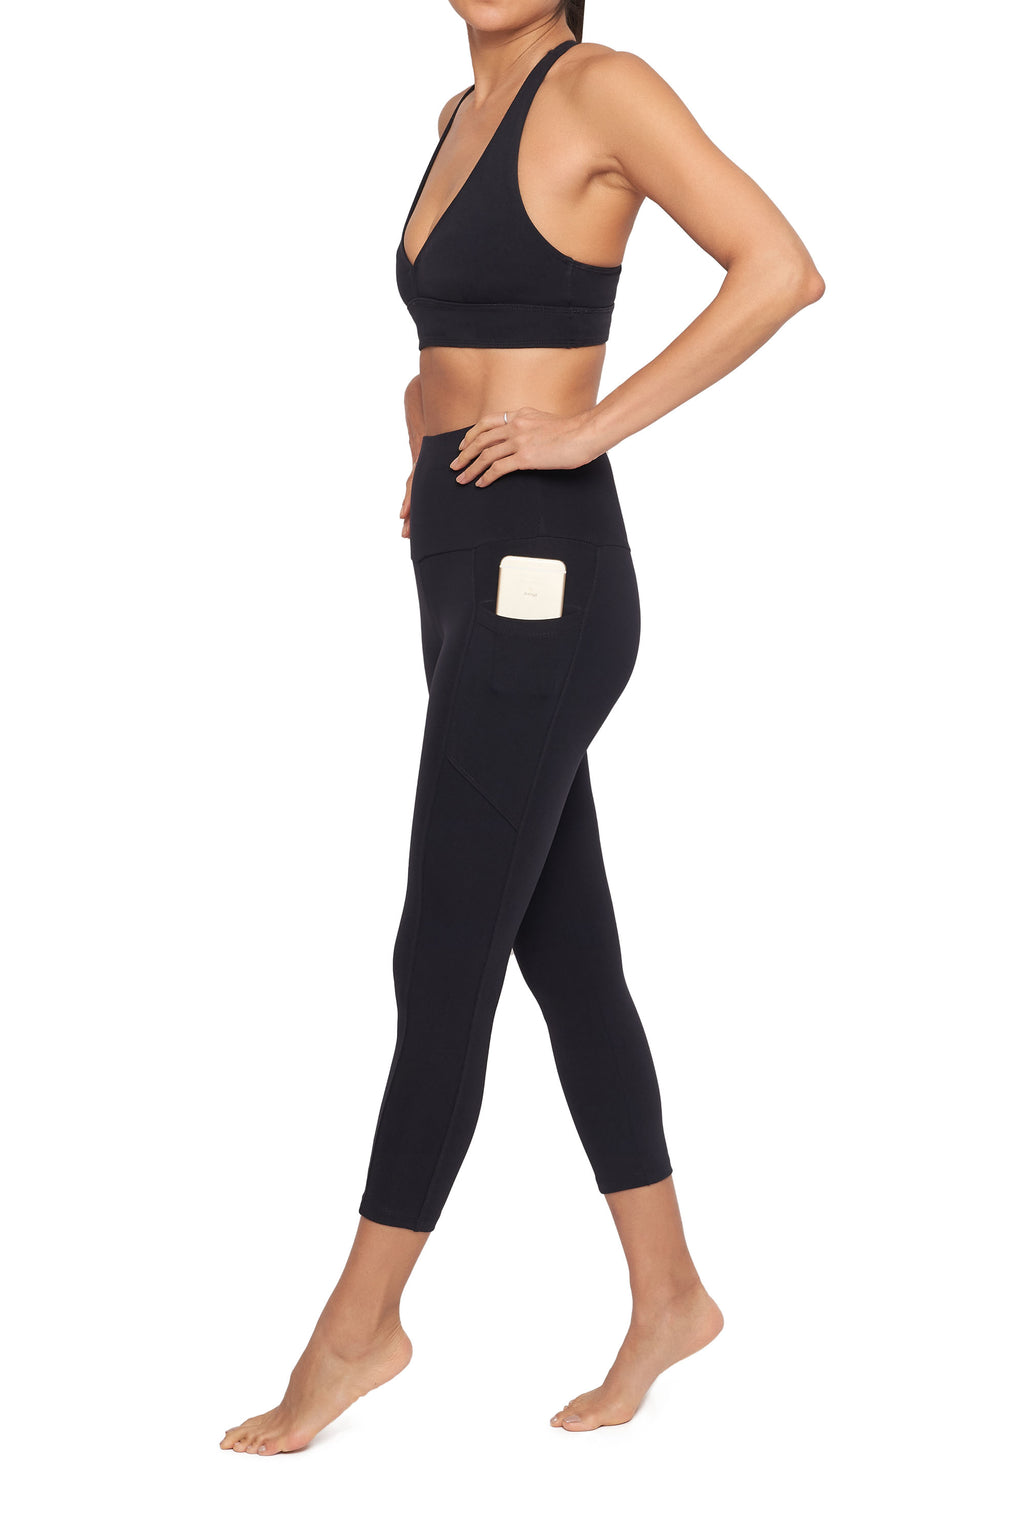 High-Waisted Supplex Mid Calf Legging with Pockets